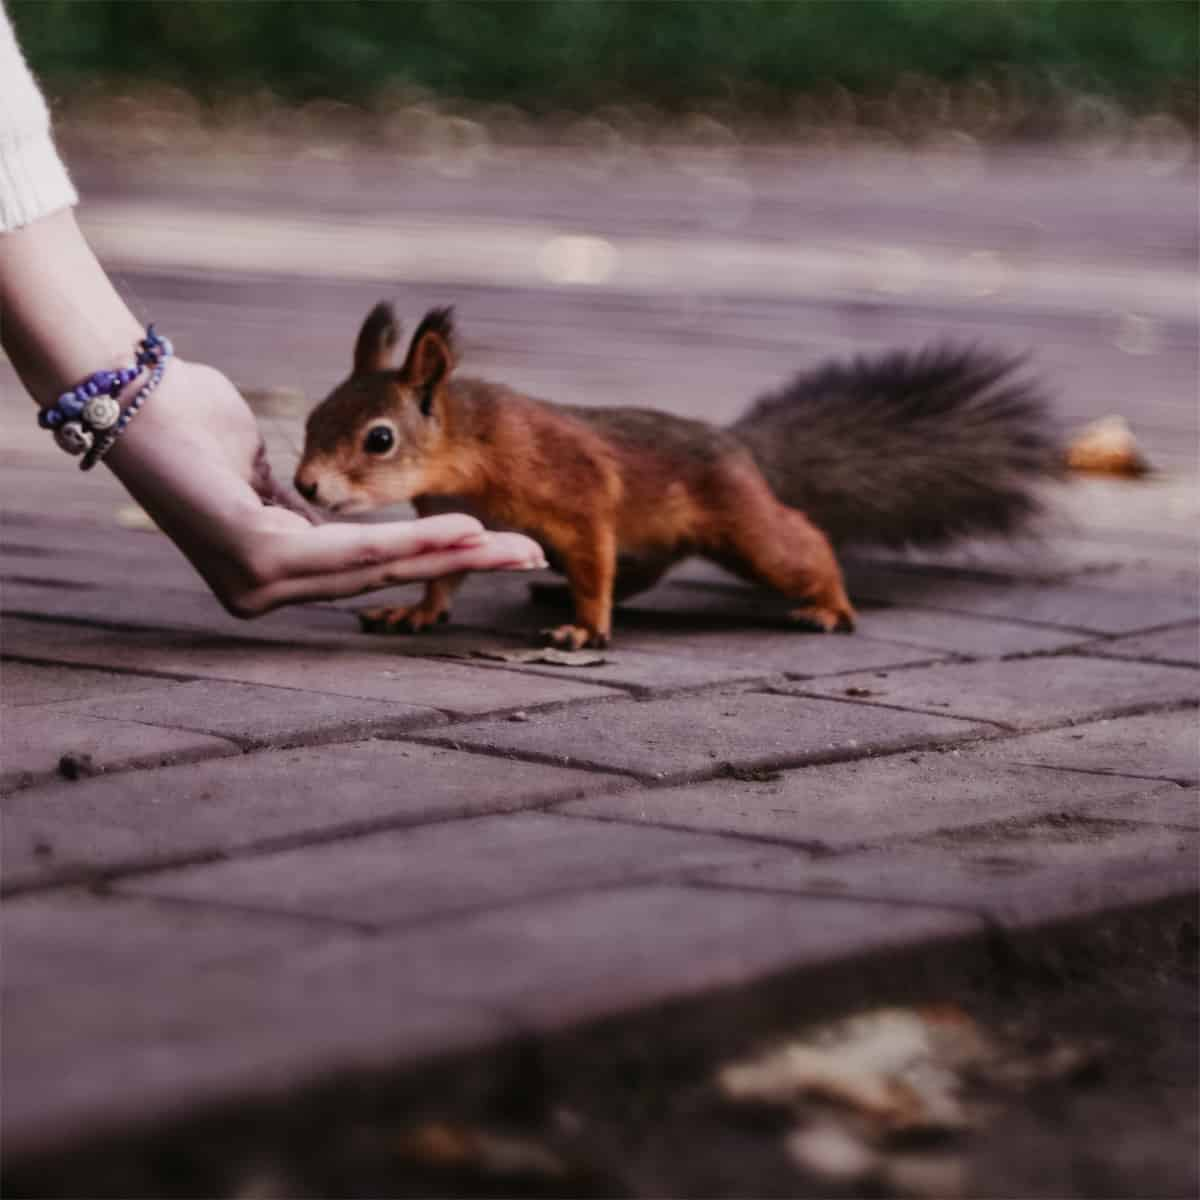 Squirrels Show The Way - Comparing Squirrels To Dogs